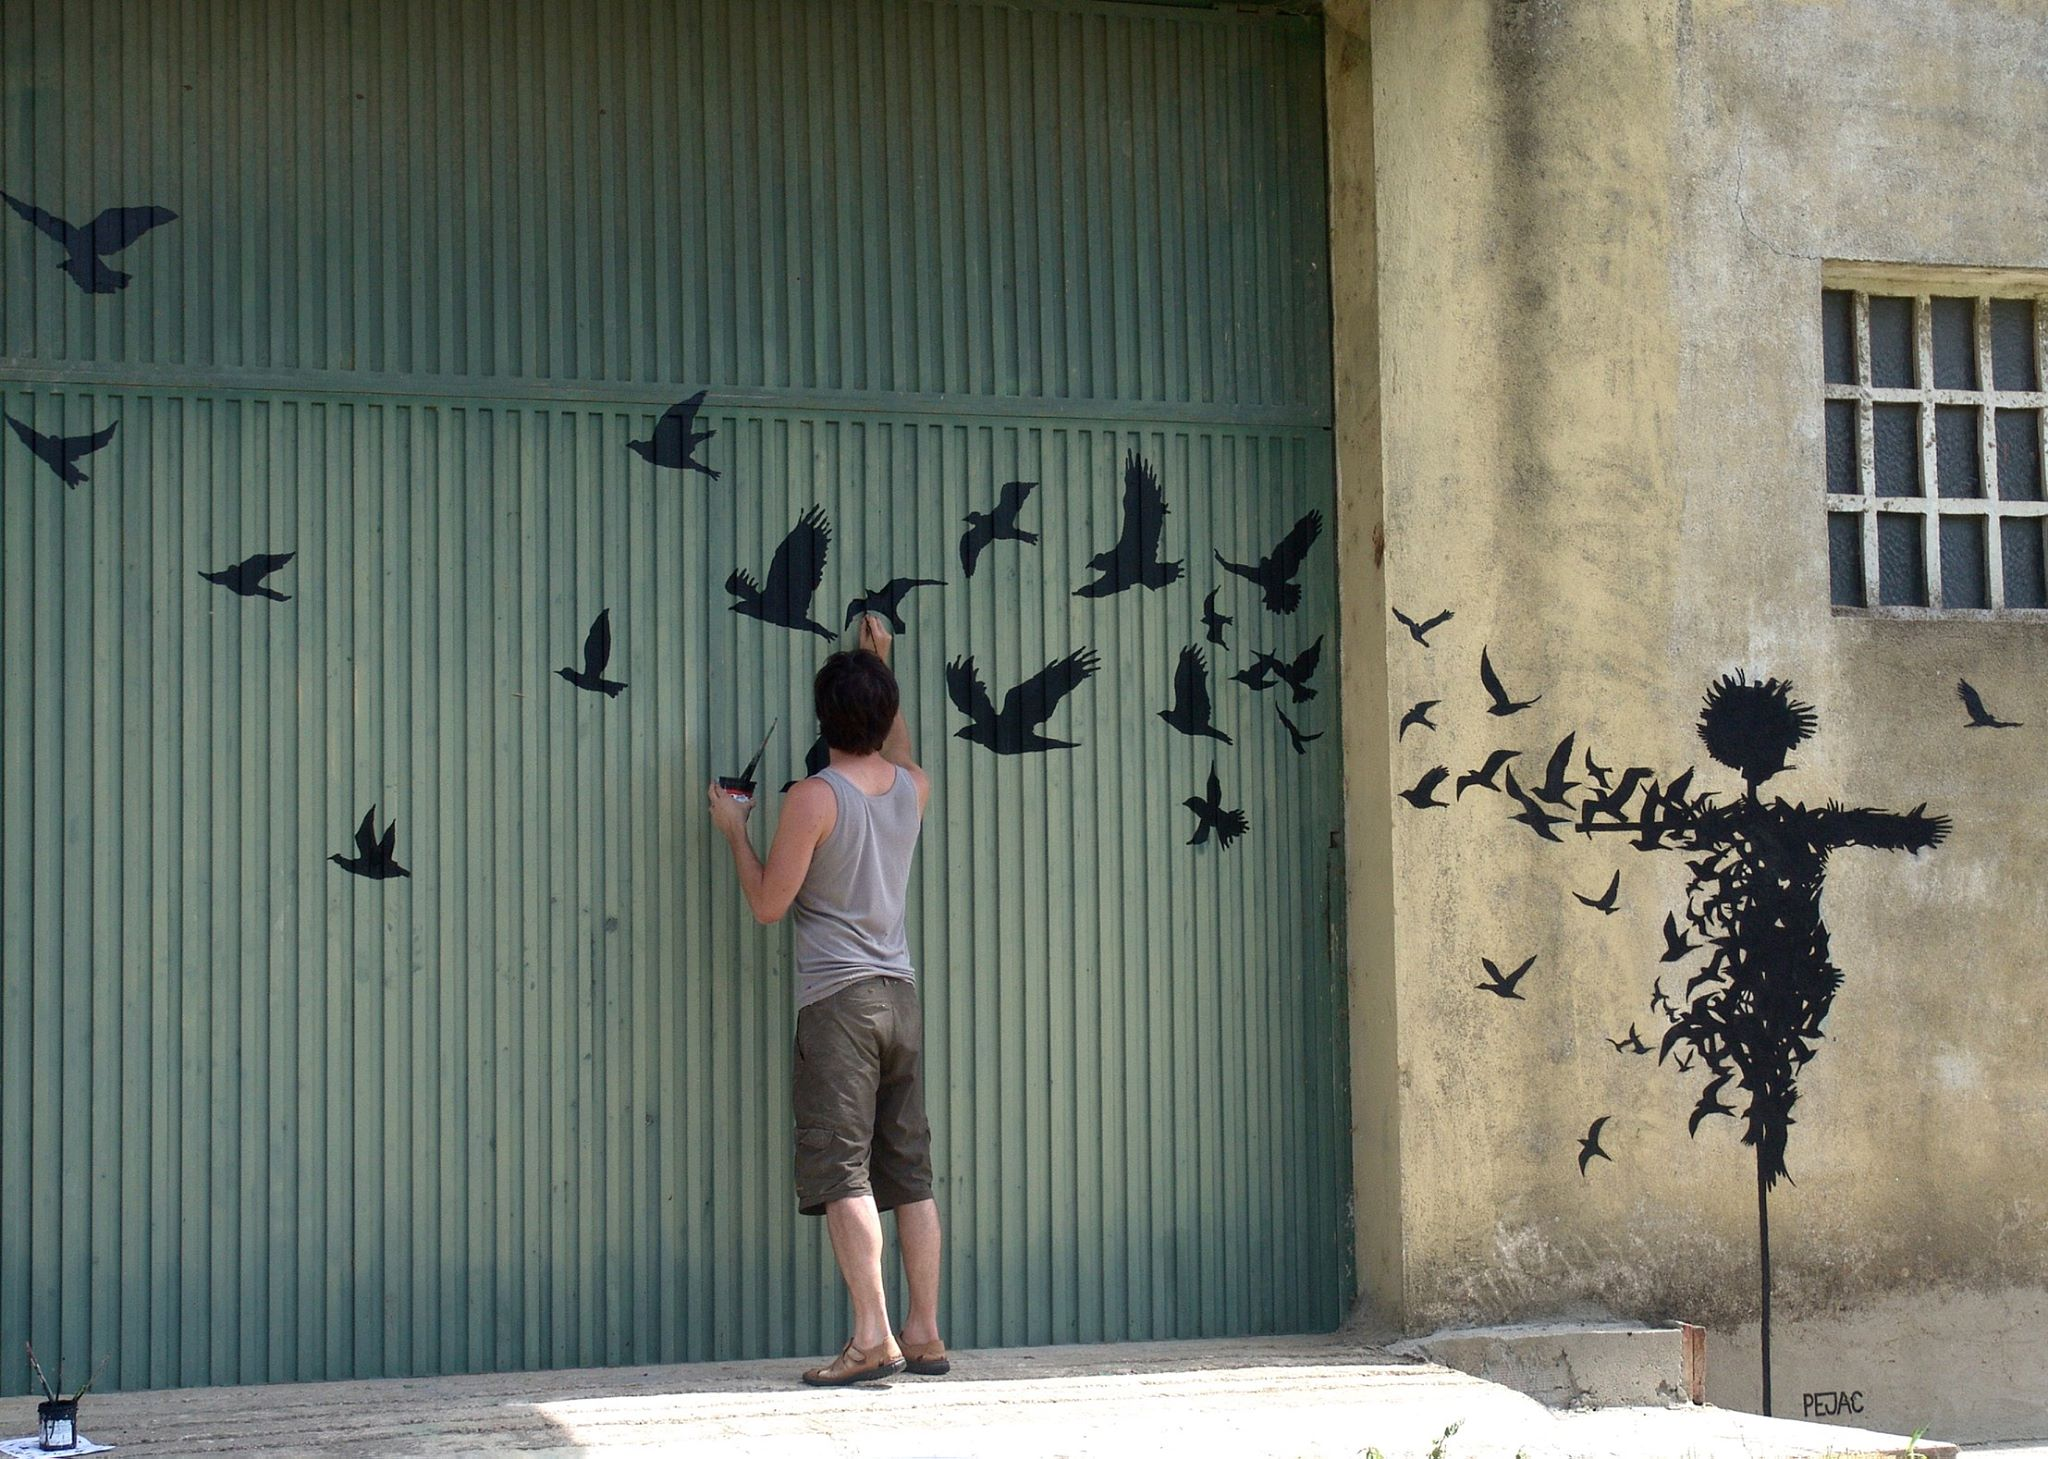 Street-Art-by-Pejac-in-Salamanca-Spain-2